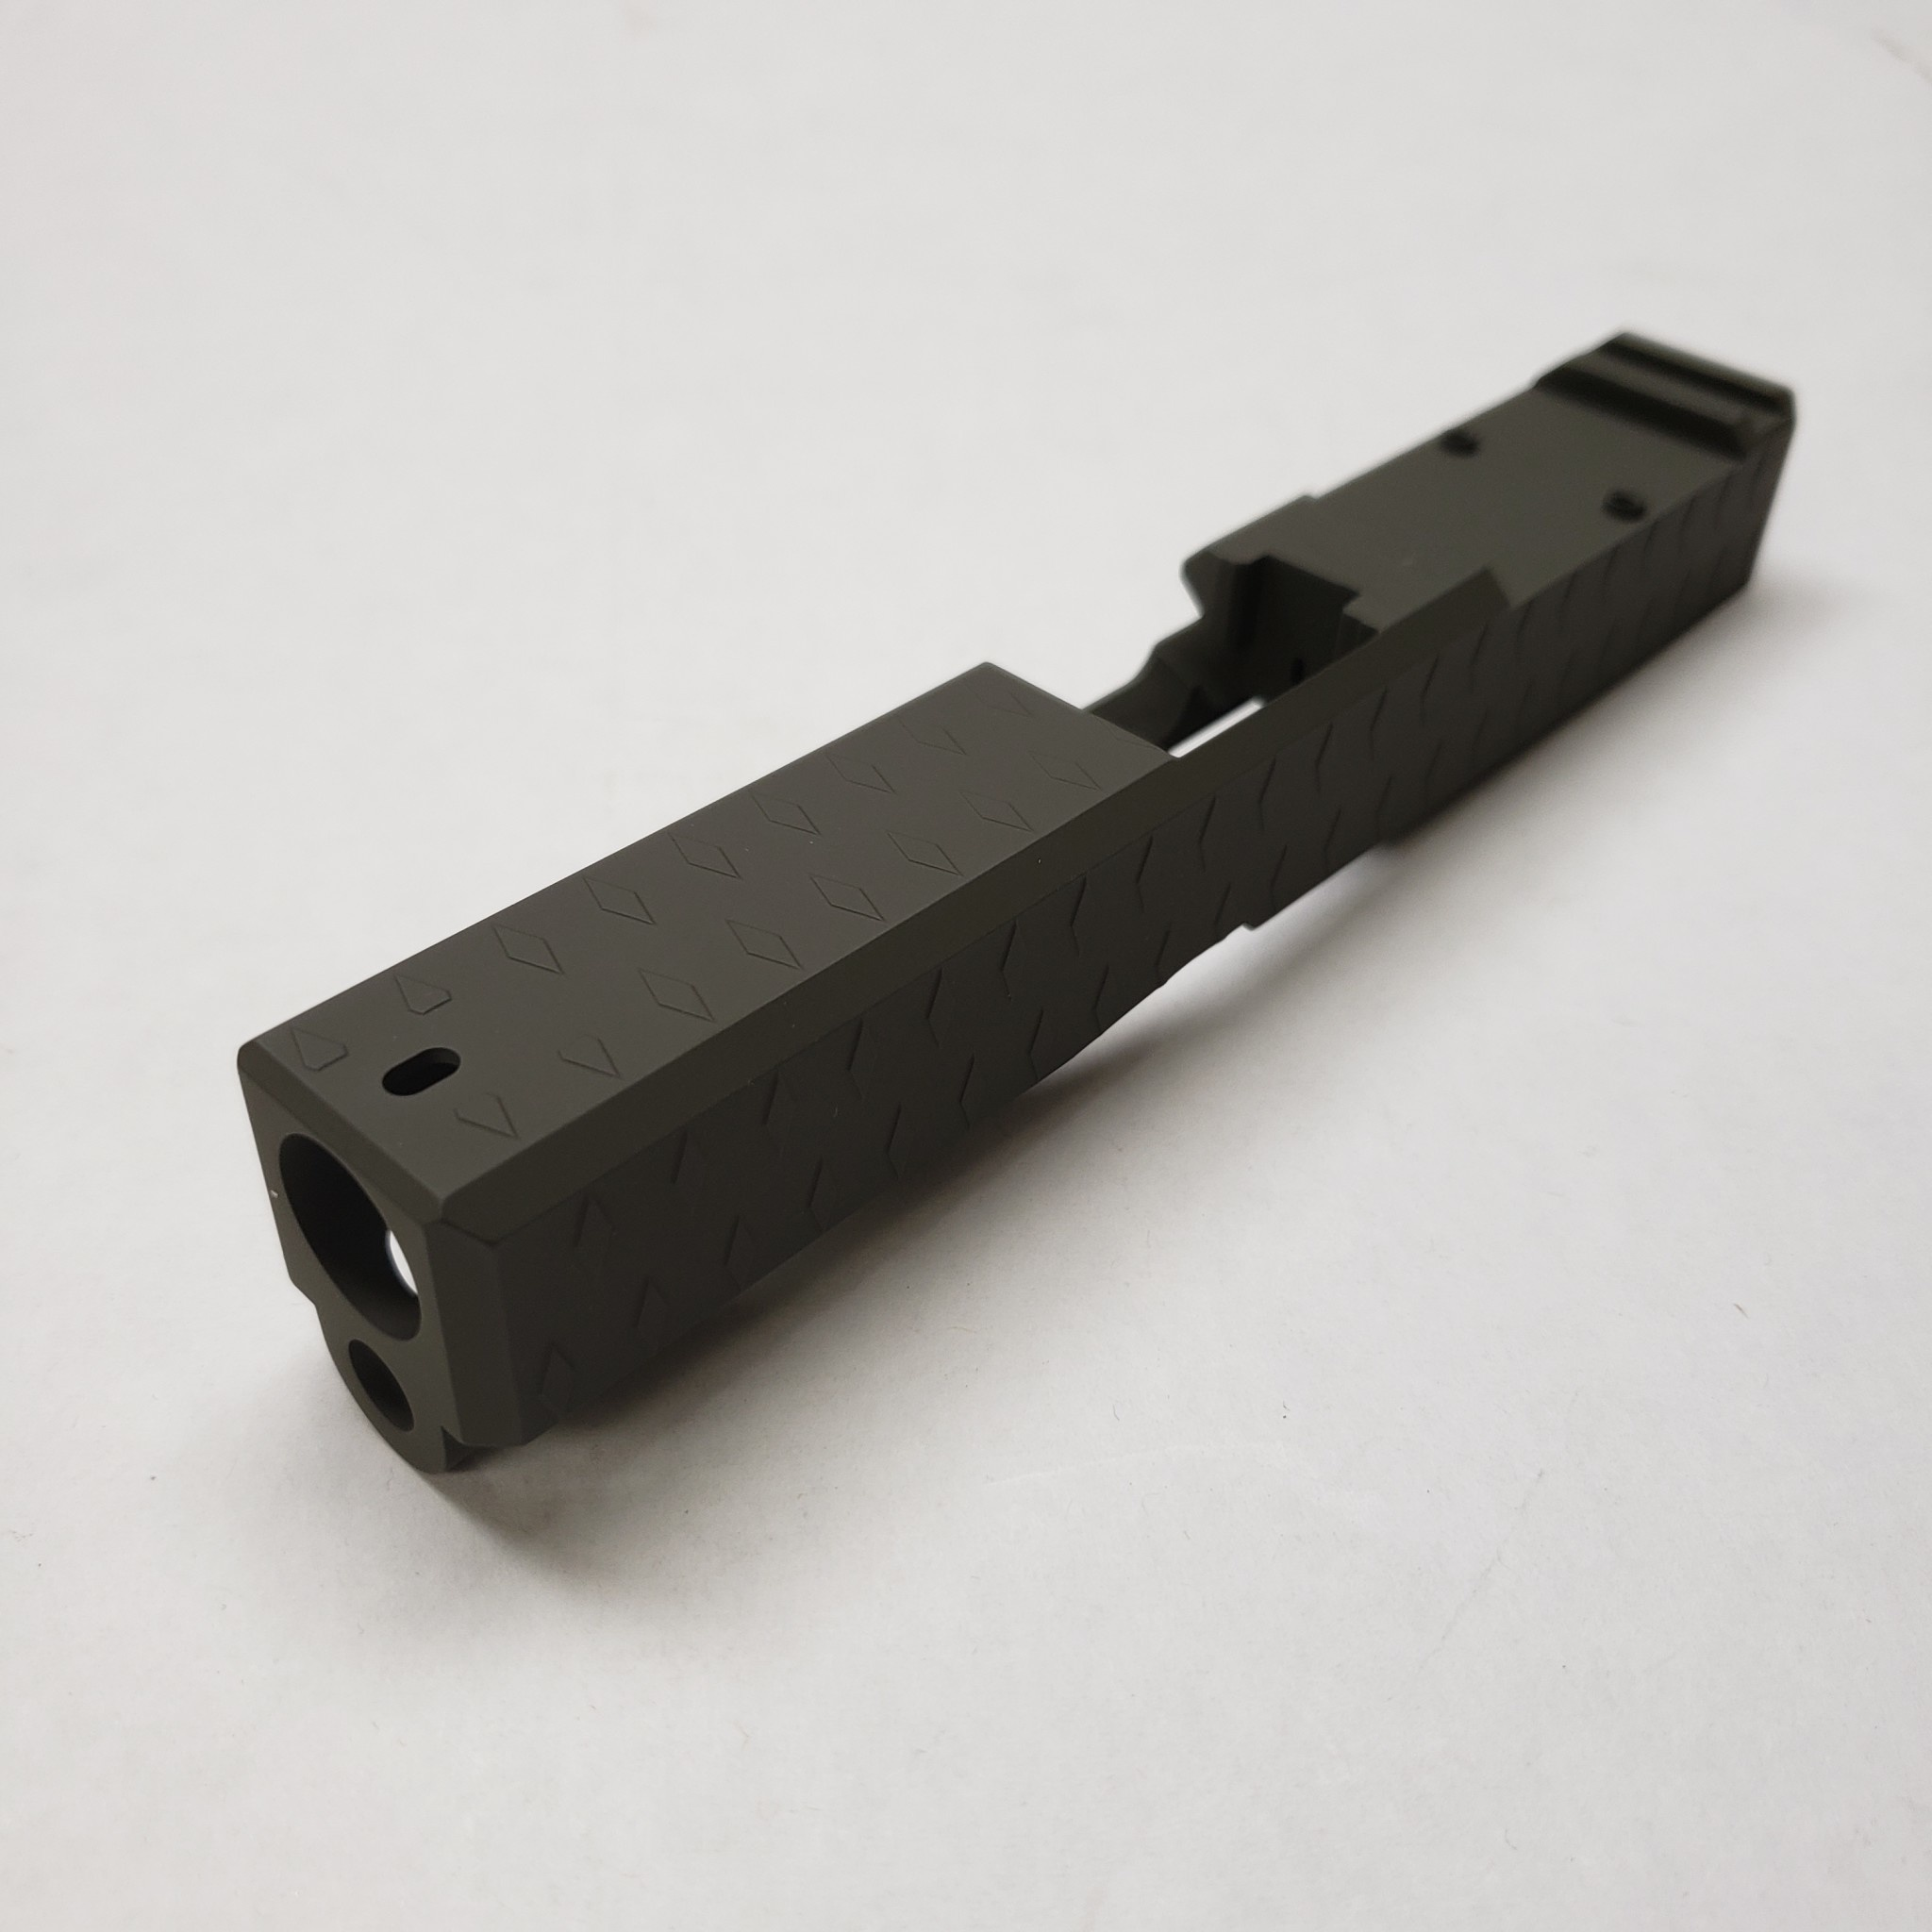 FU Glock Slide T3 Stripped G19 9mm